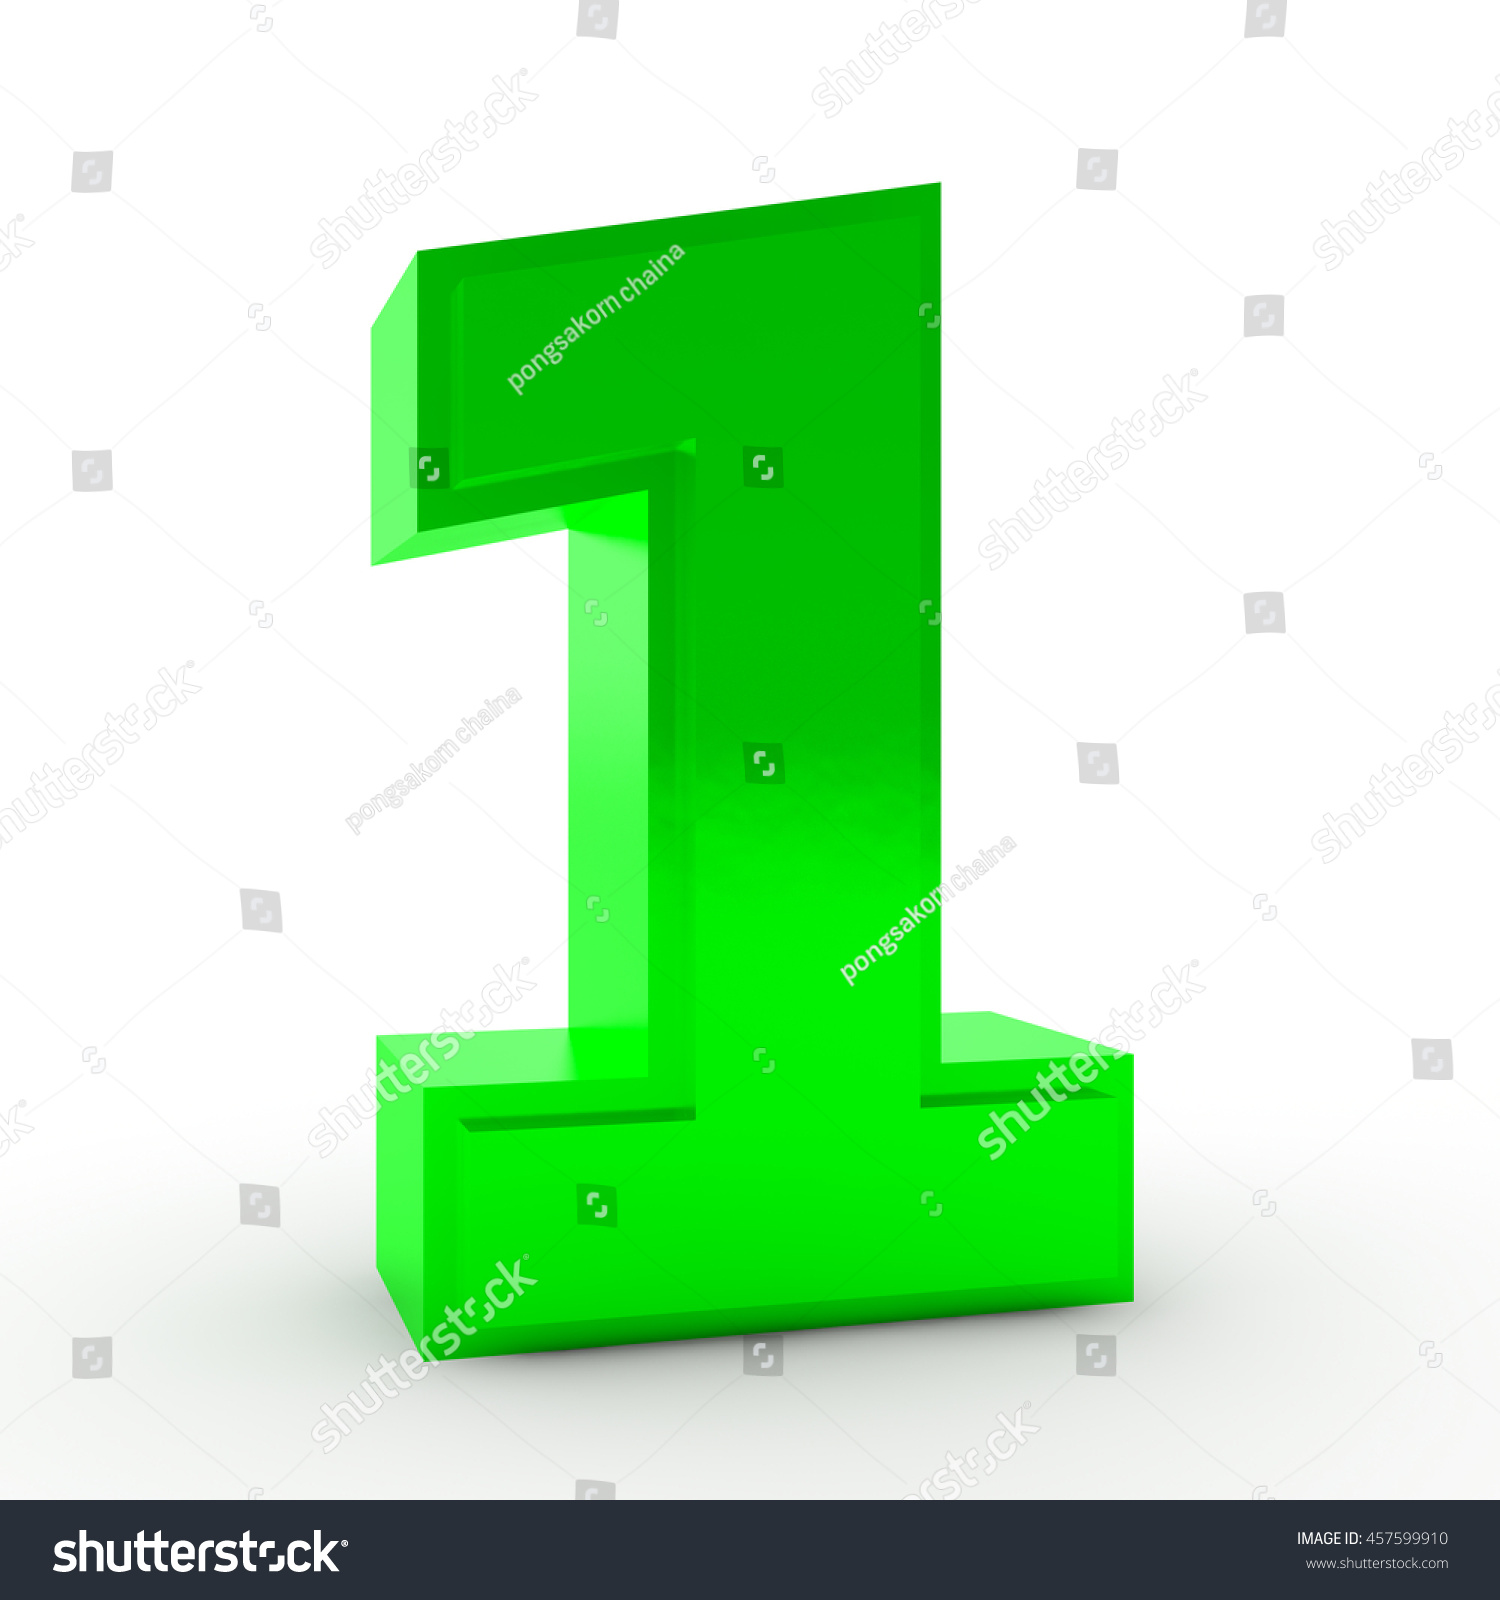 Number 1 Green Color Collection On Stock Illustration 457599910 ...